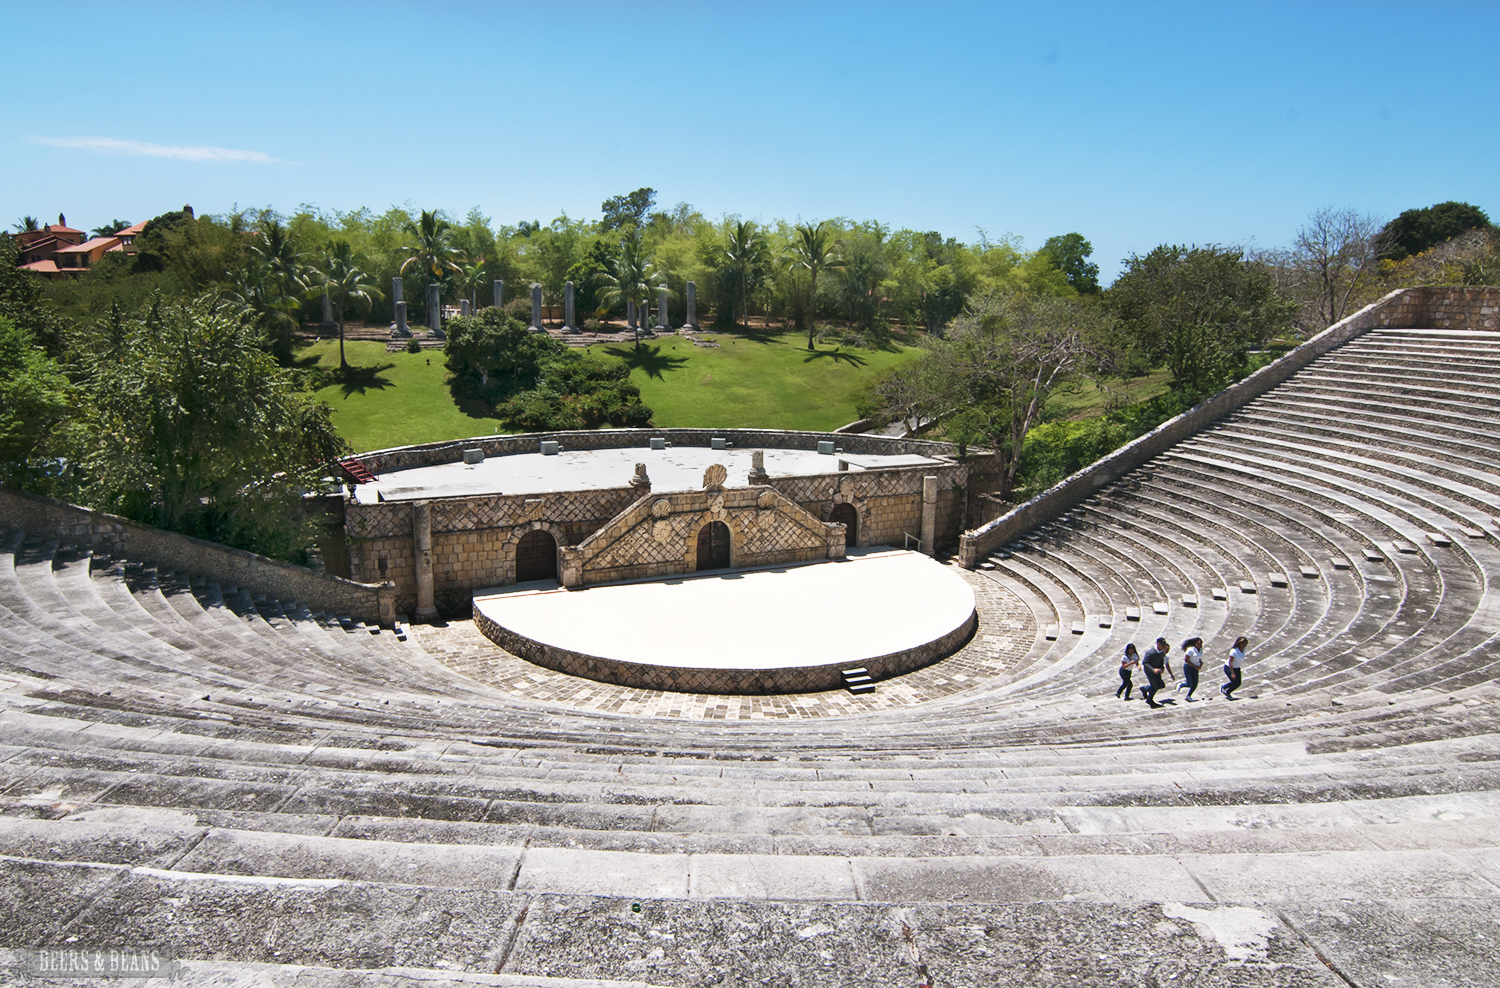 Greek-style amphitheater at Altos de Chavón in La Romana, Dominican Republic.